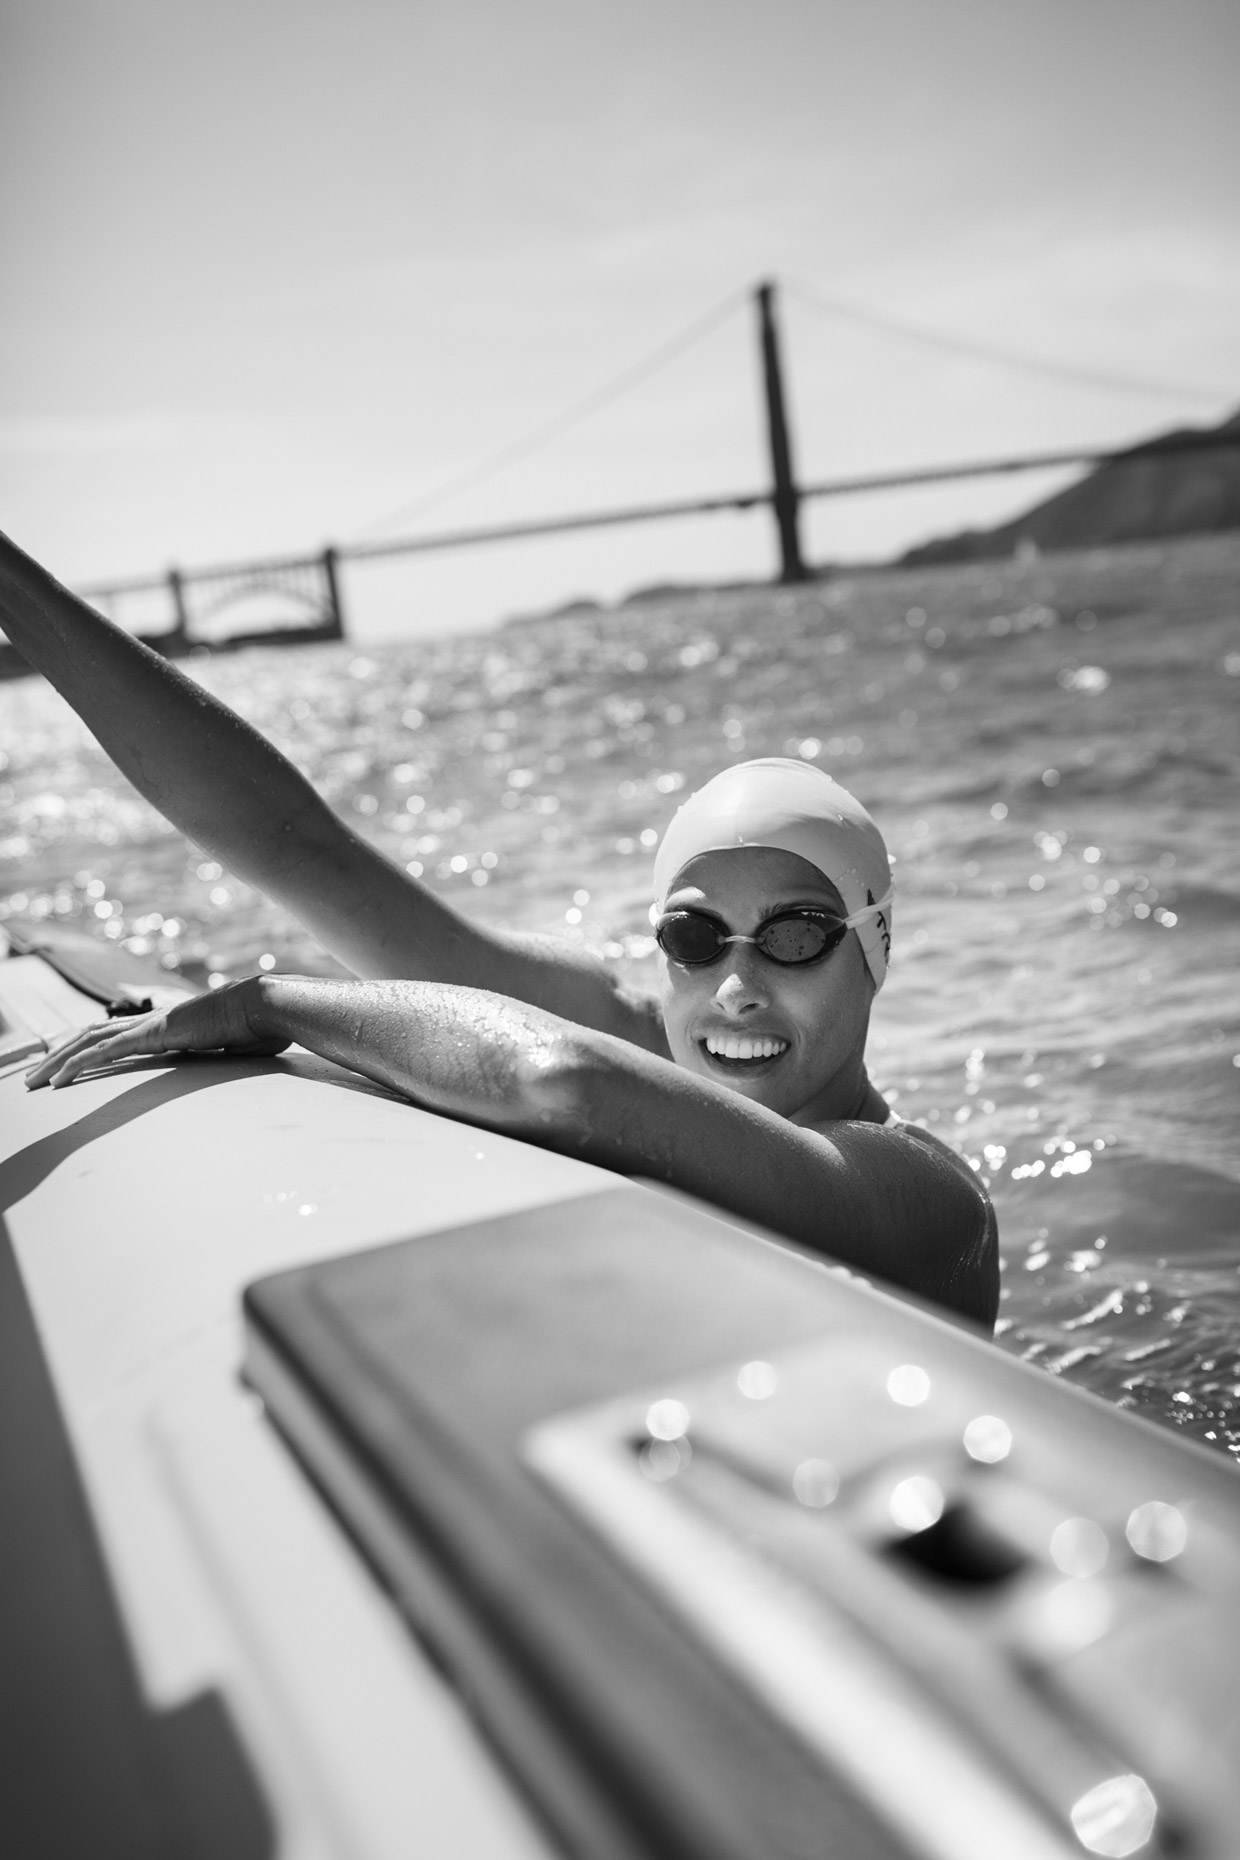 andy BATT photographs marathon swimmer Laurin Weisenthal for OUTSIDE Magazine